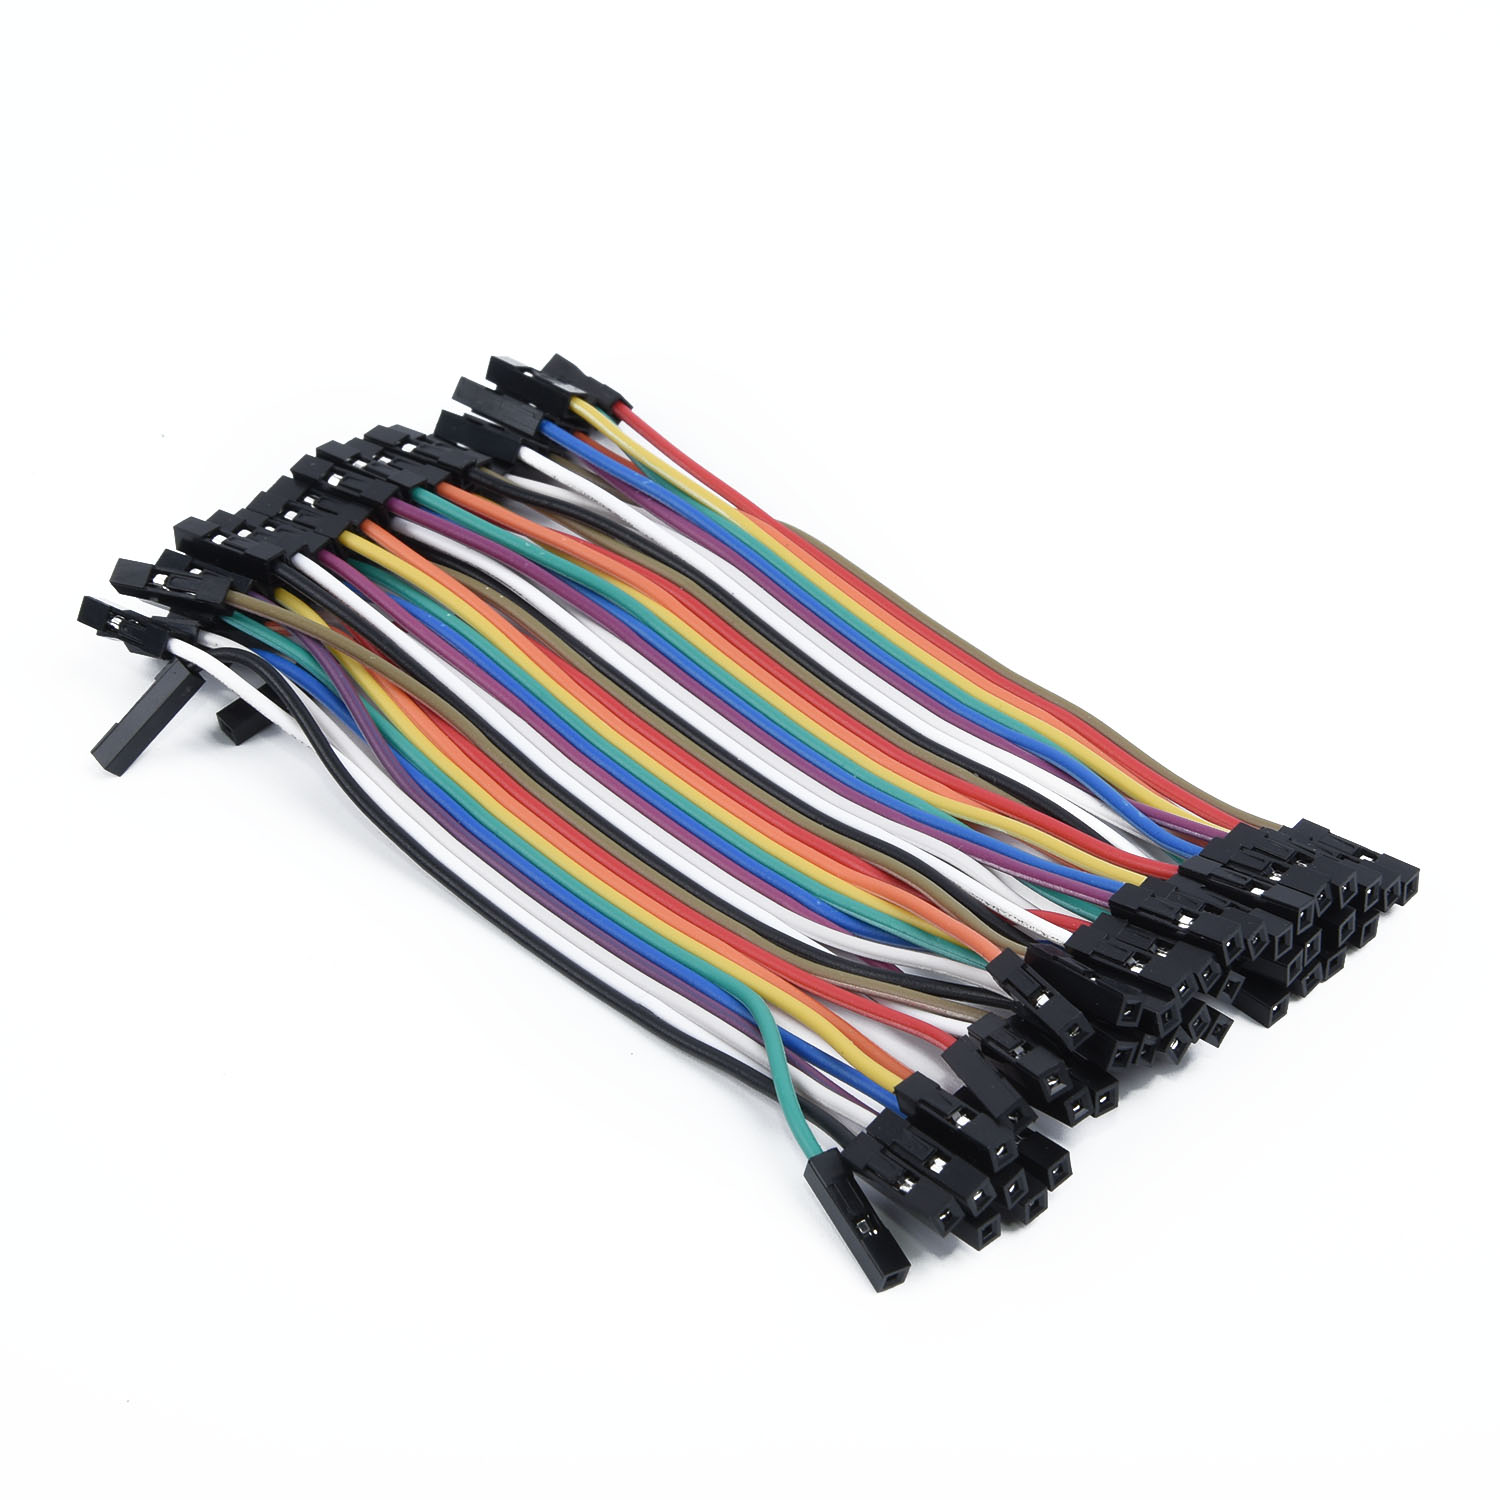 Set Of 120x Male To Female 11cm Dupont Wire Jumper Cable For Arduino Breadboard